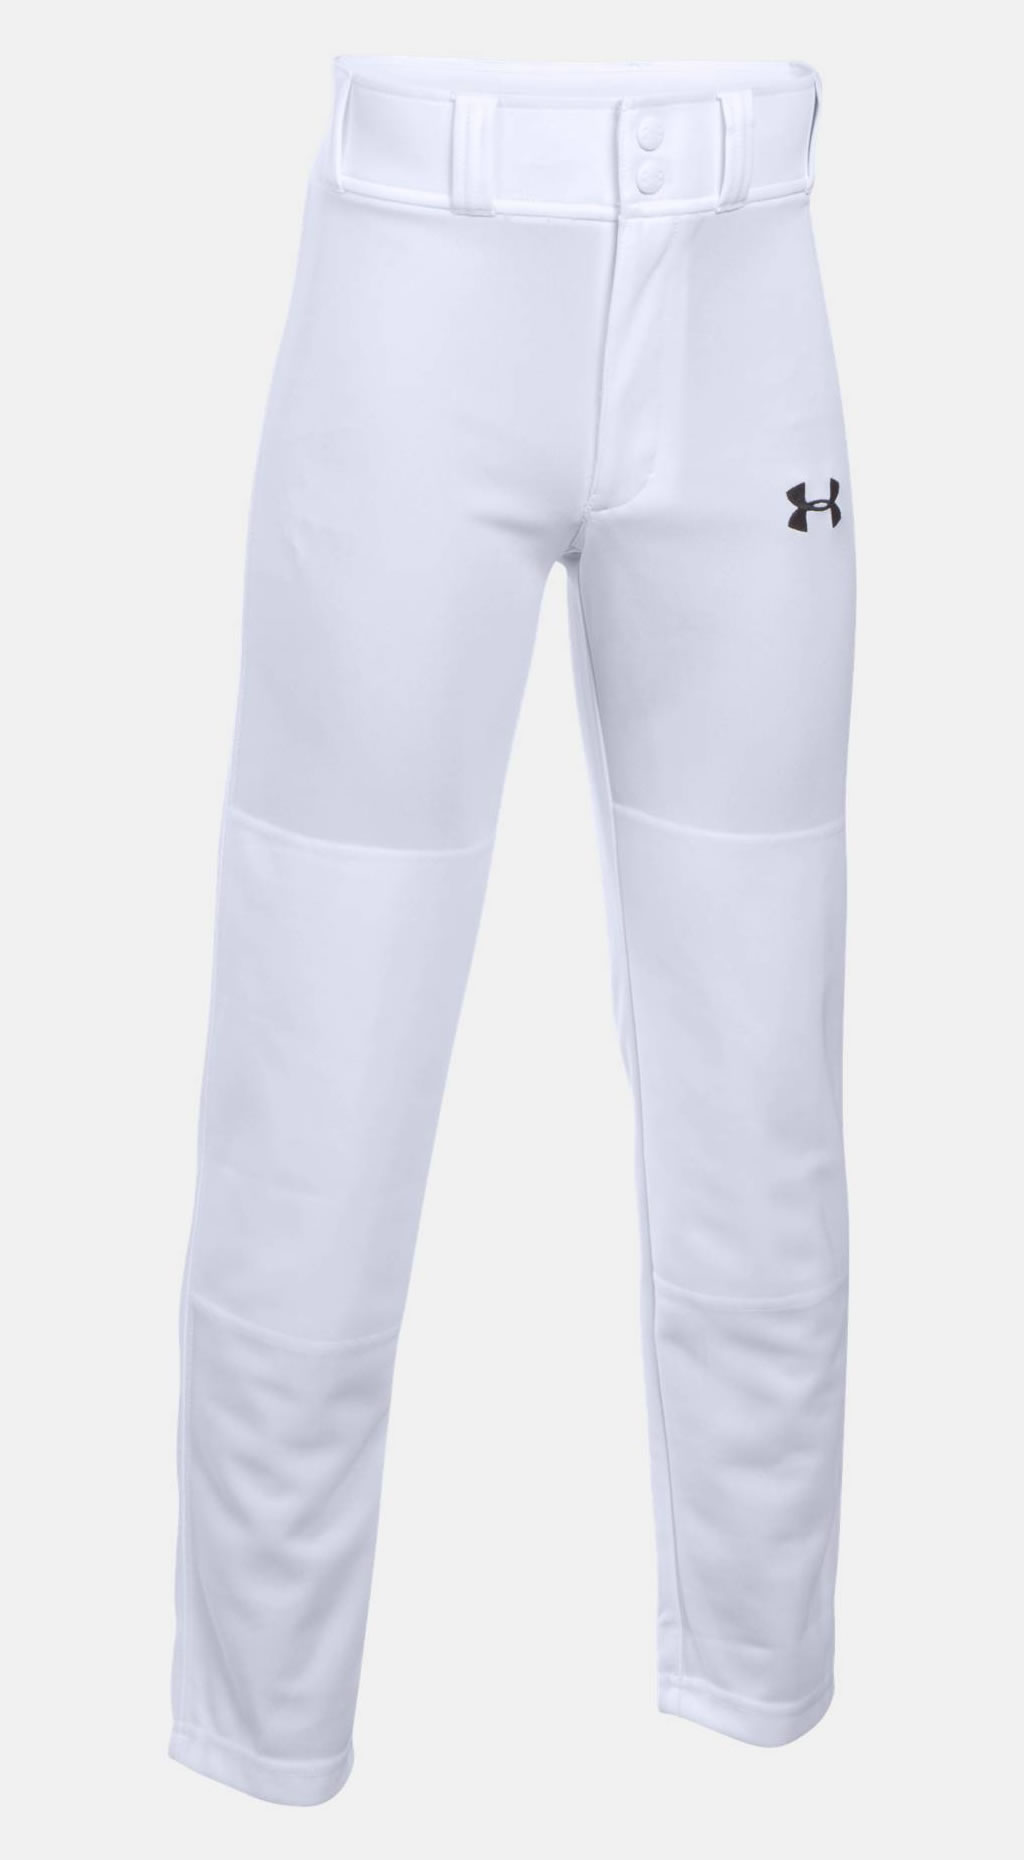 White baseball pants for boys by Under Armour